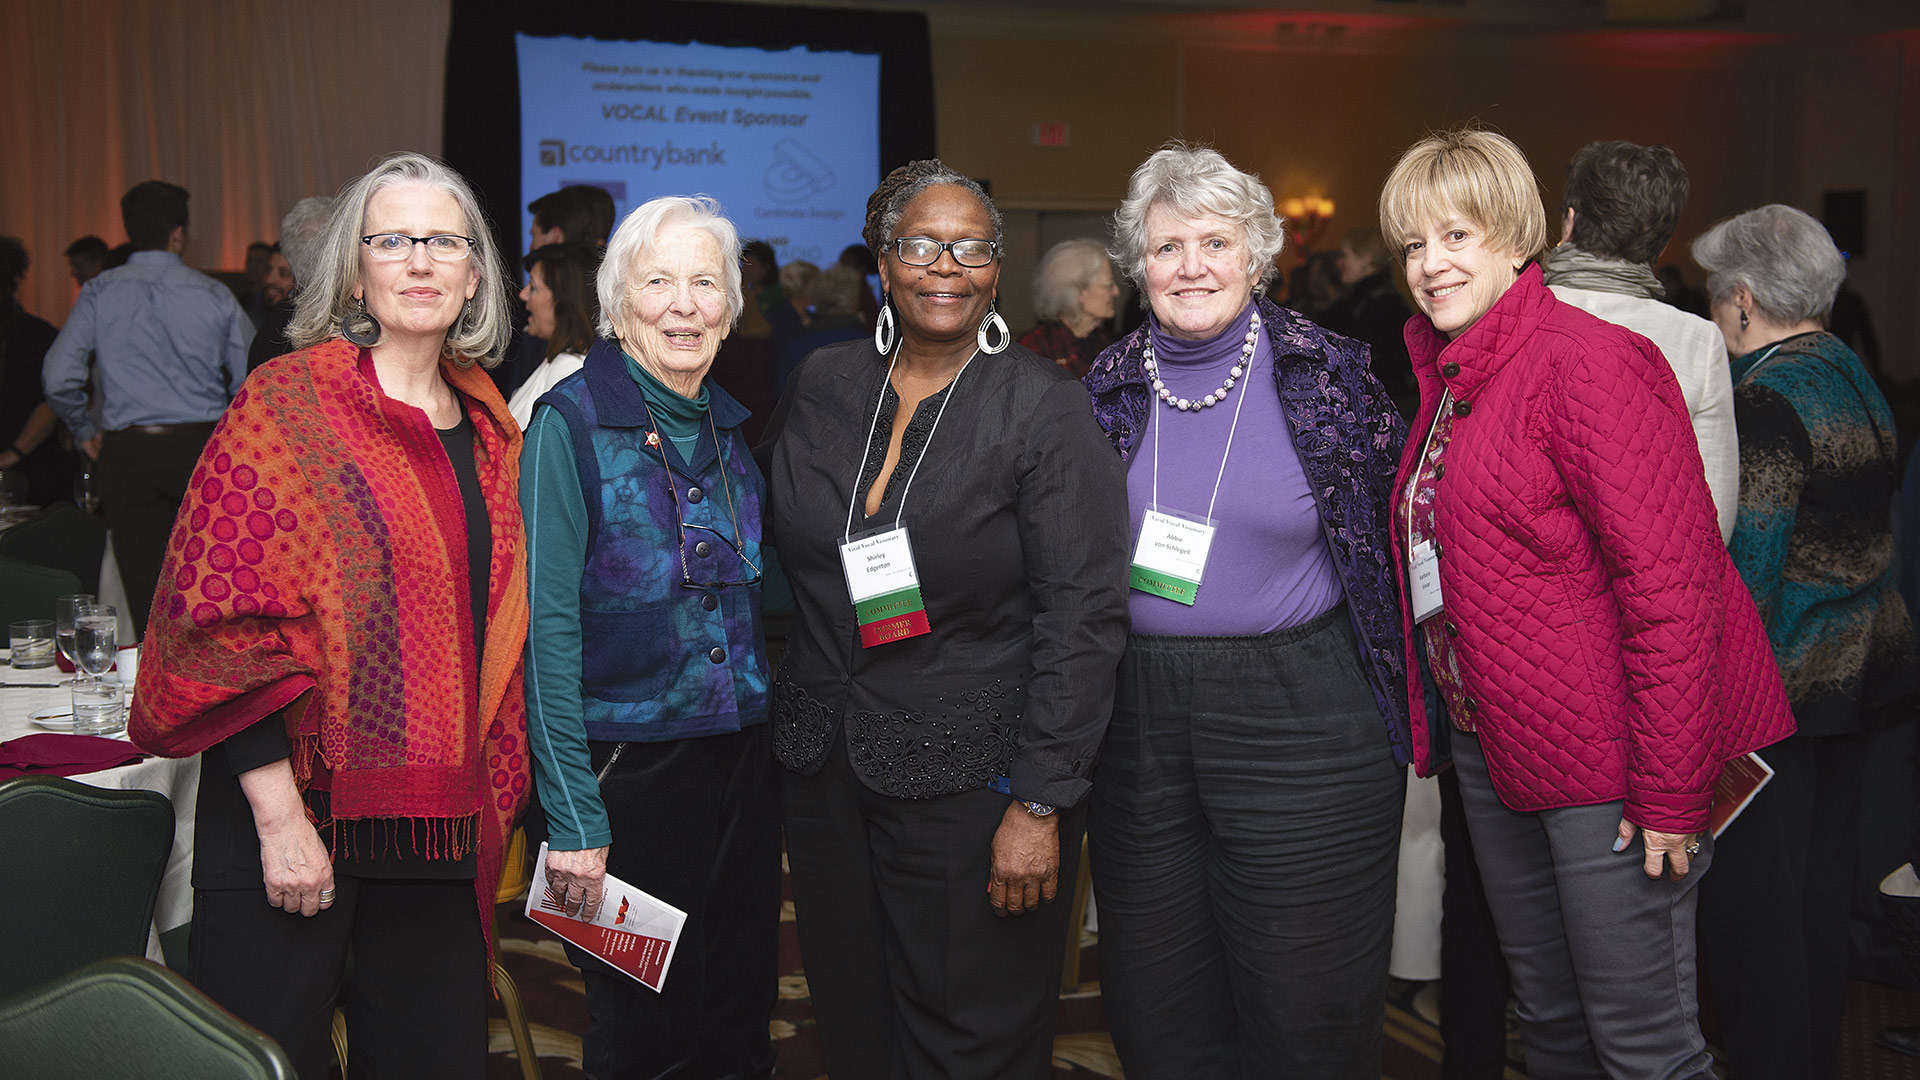 From left, Eugenie Sills, Eleanor Lord, Shirley Edgerton (all former board members), Abbie von Schlegell, and Barbara Viniar